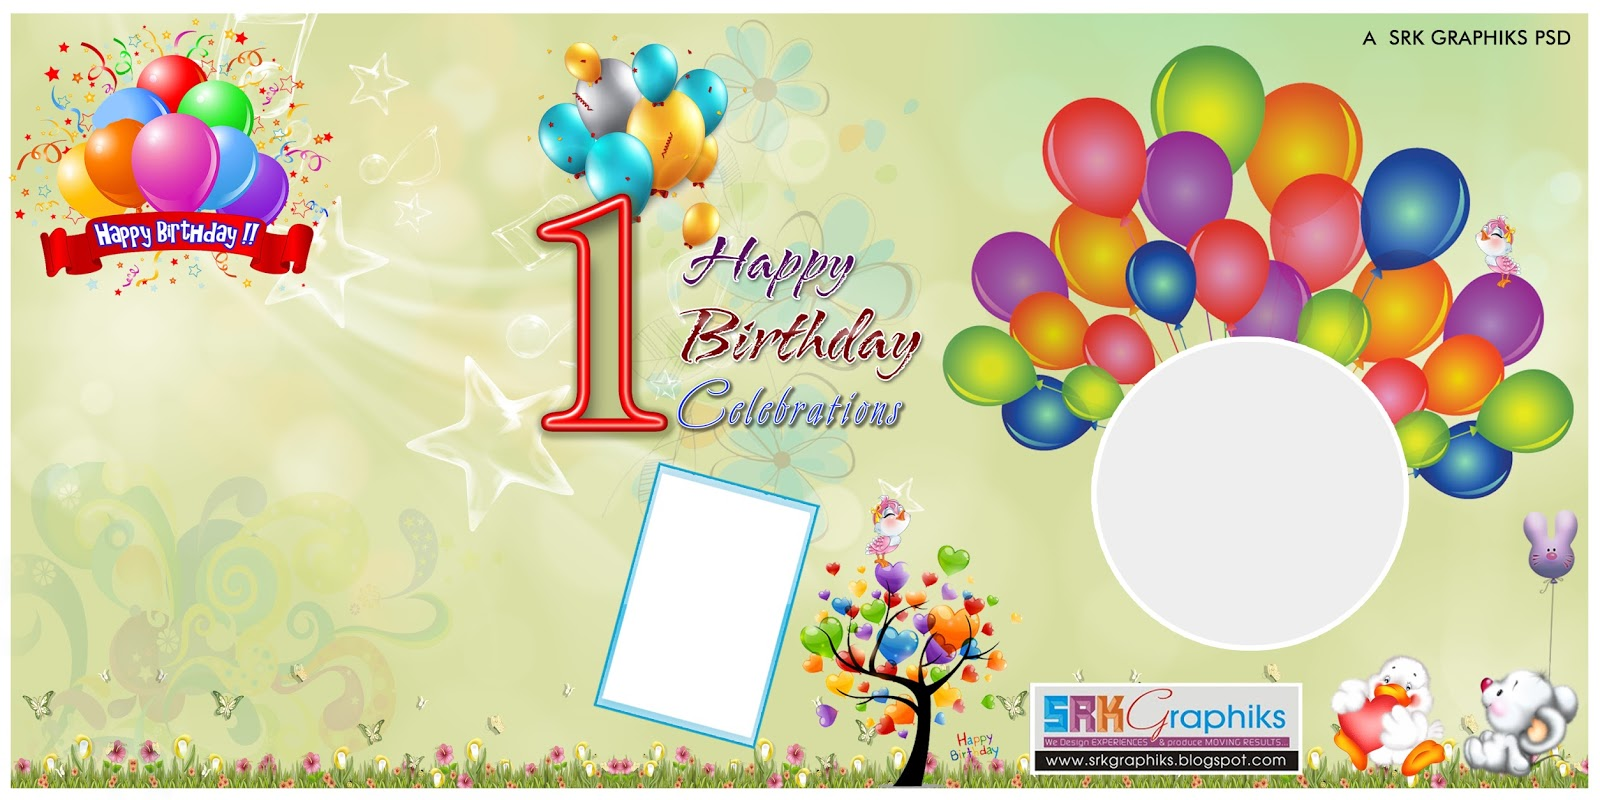 1st happy birthday flex designs ; birthday-photo-banner-design-birthday-flex-banner-background-design-3